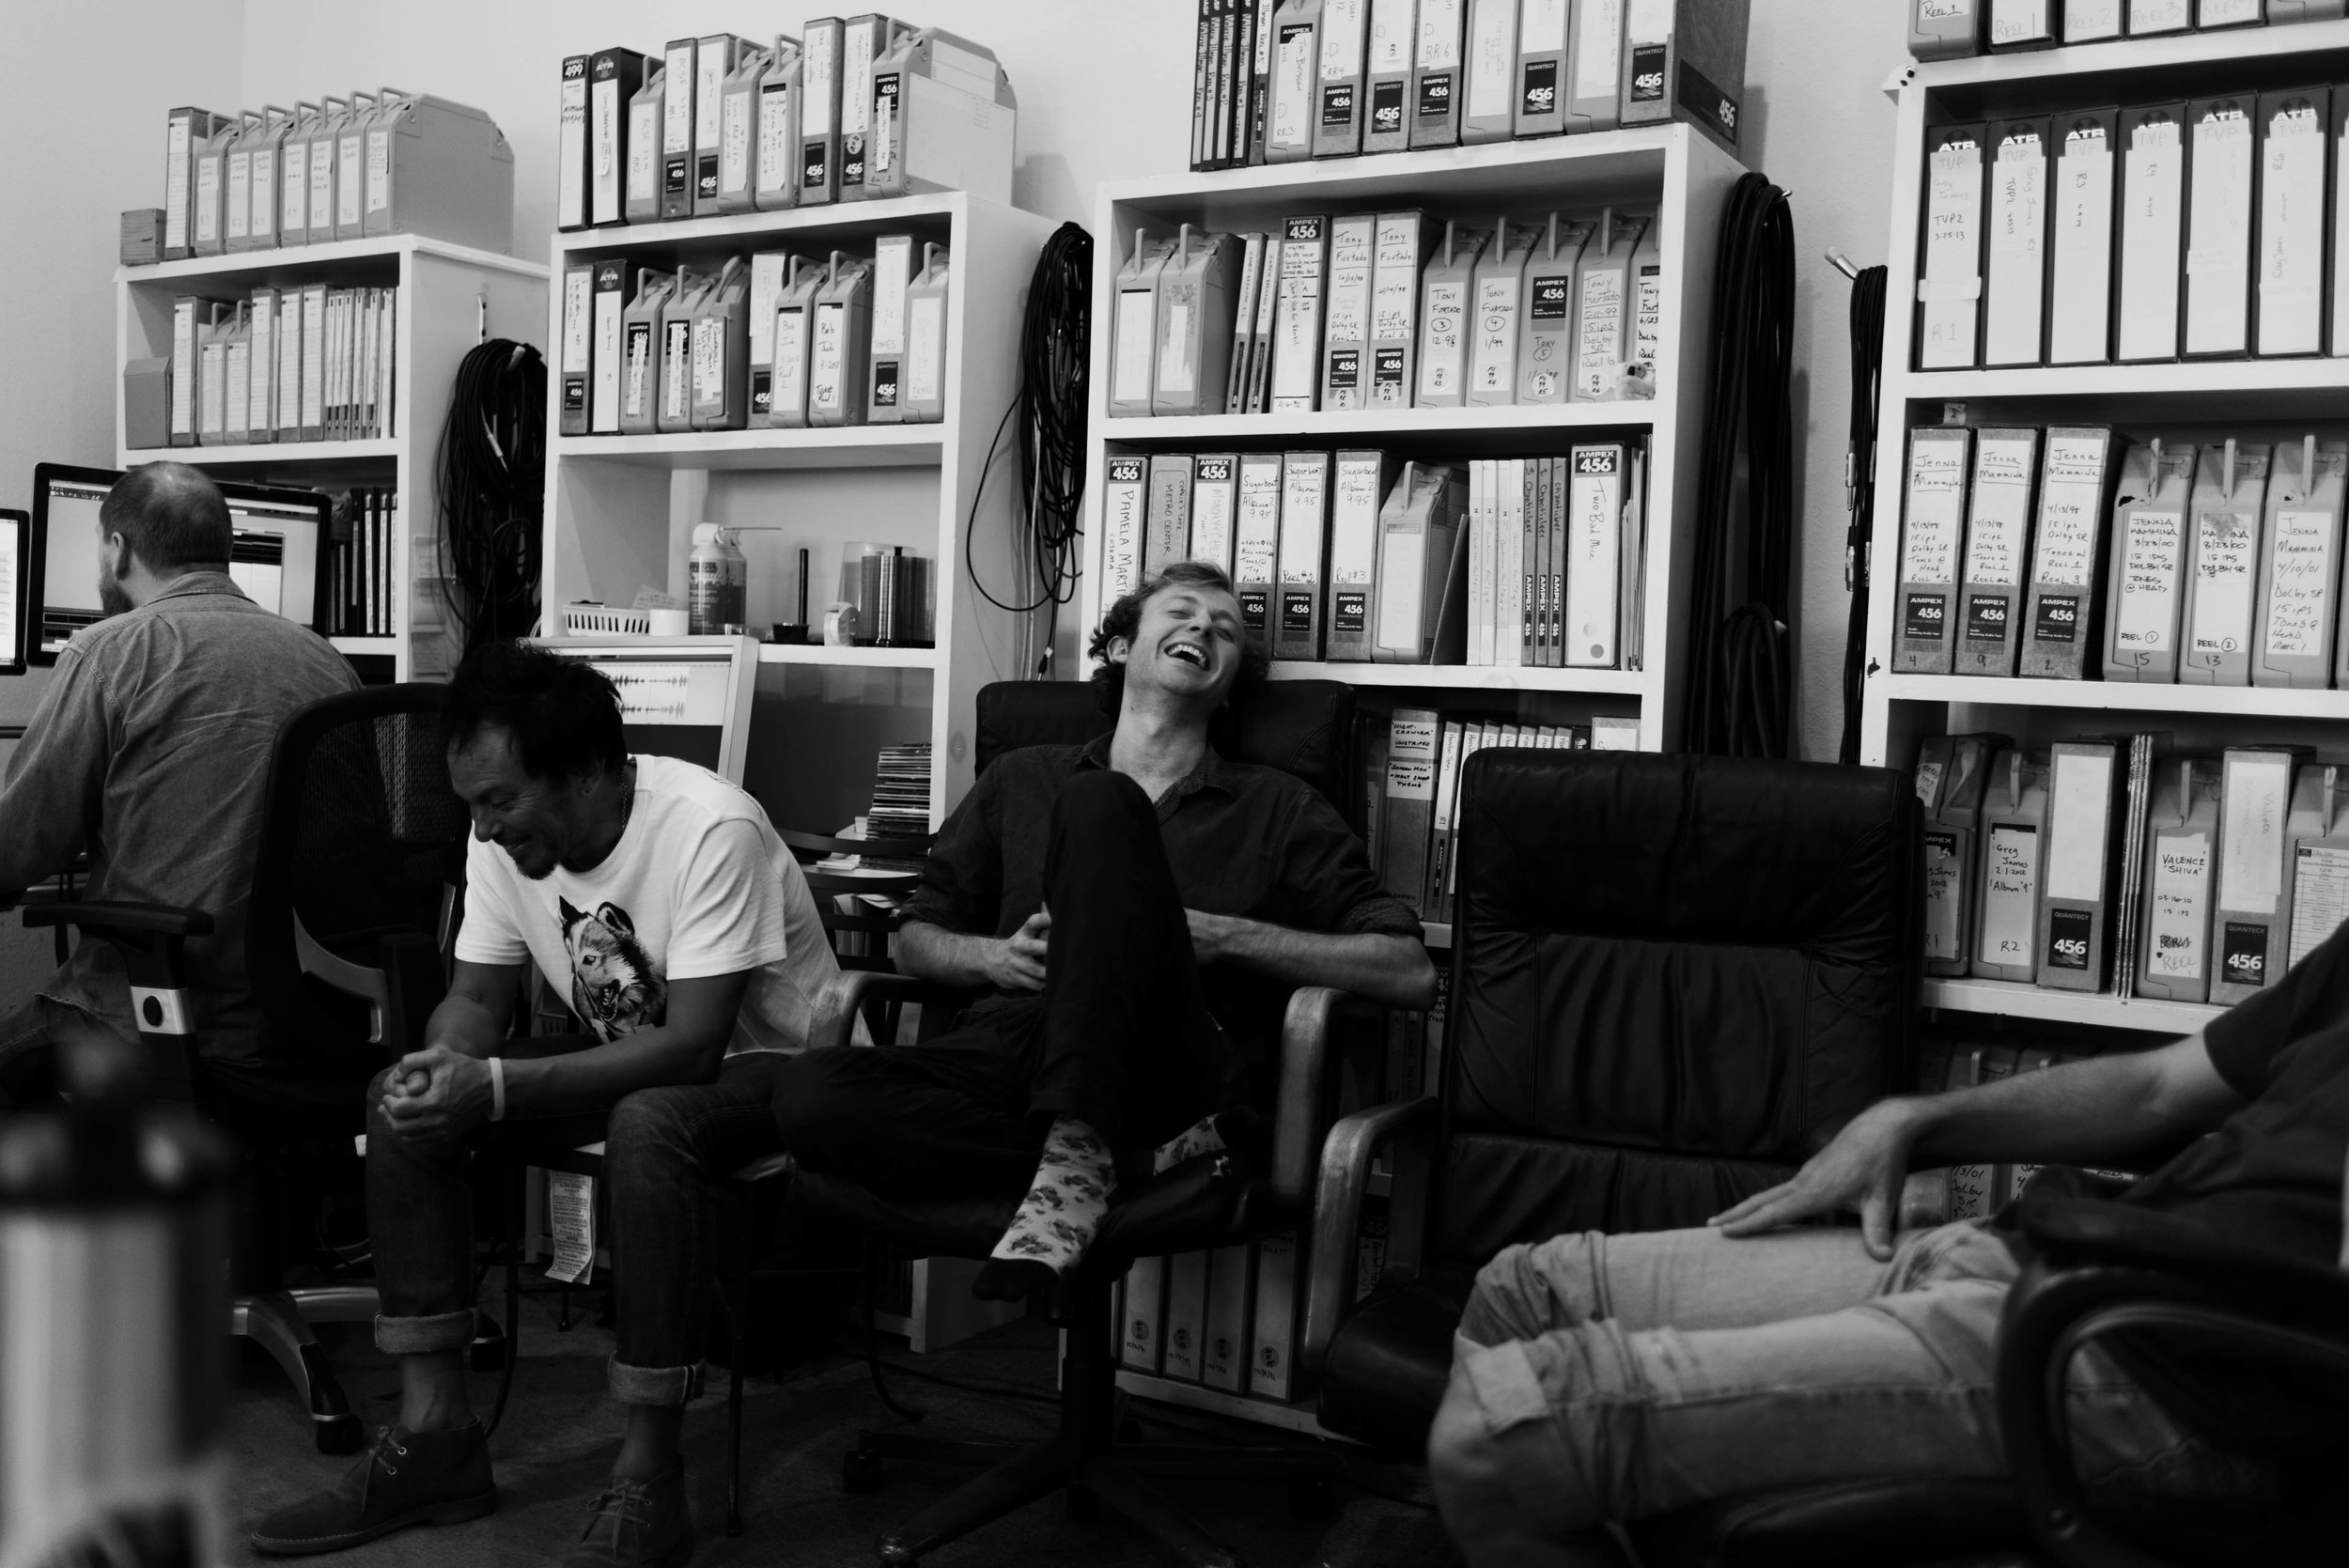 At OTR studios in August with Brain, Hans, and Kendall. Photo by Julian Pitt